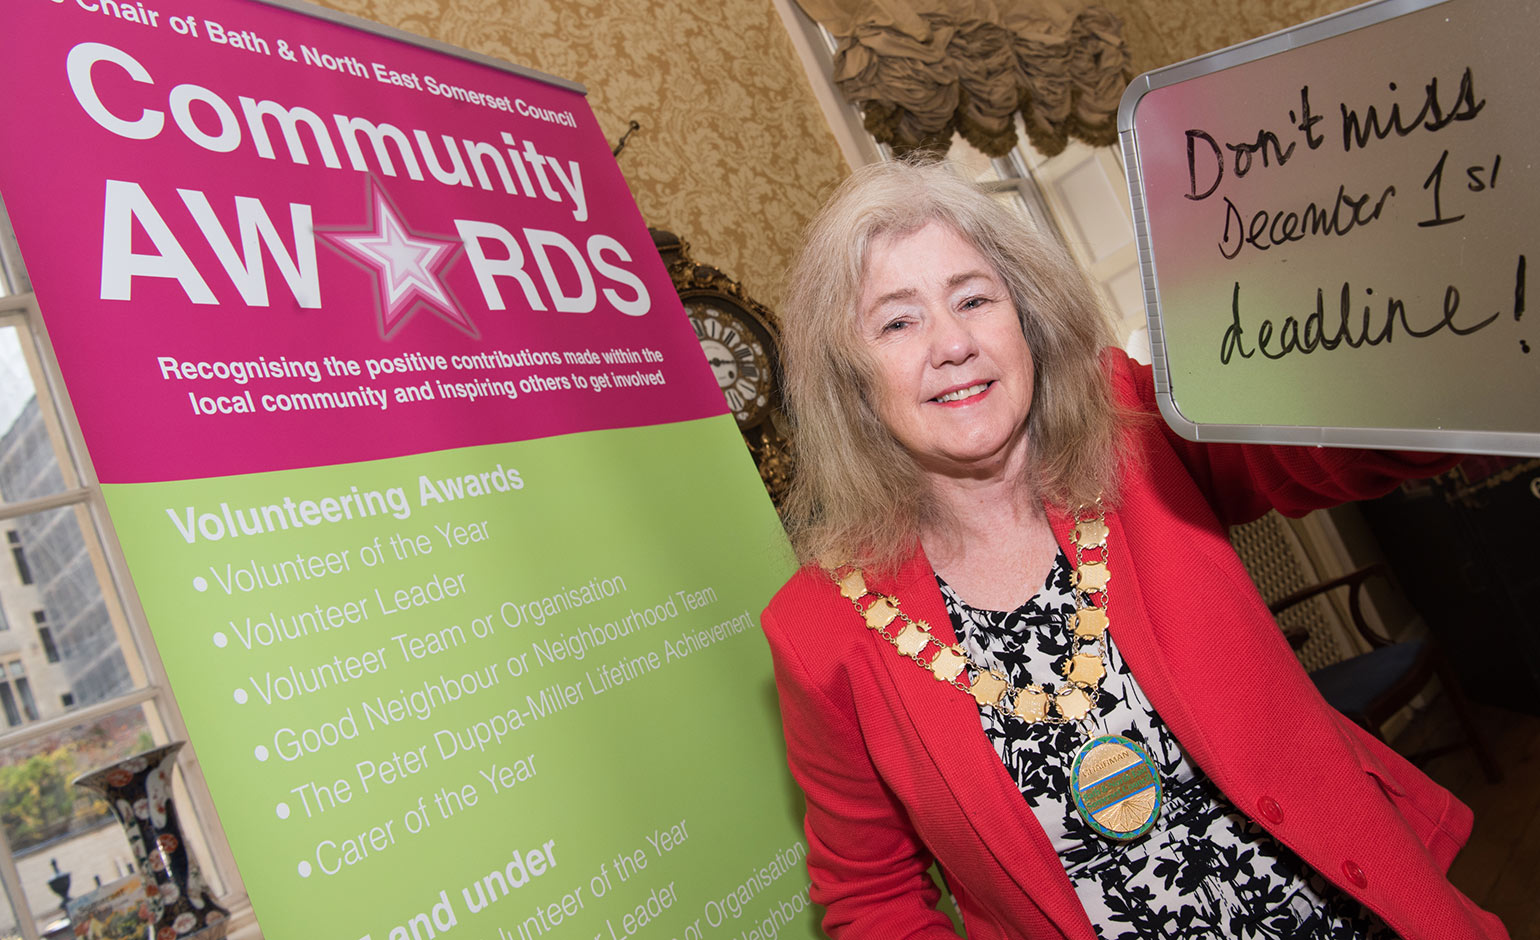 Time running out to nominate hard-working heroes for Community Awards